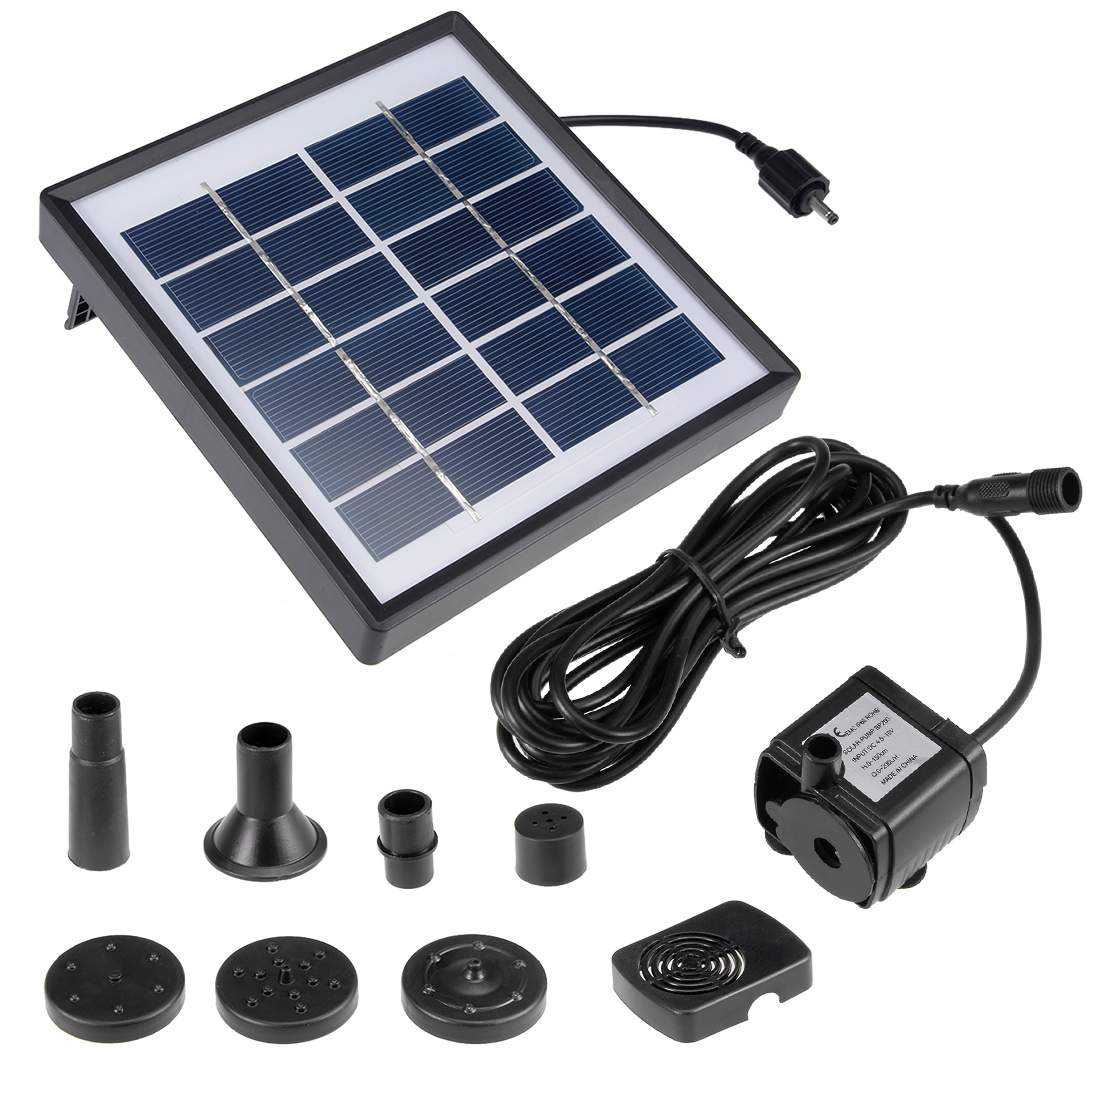 DC4.5-10V 1.5W Solar Power Fountain Water Pump Panel Kit Pool Pond Submersible